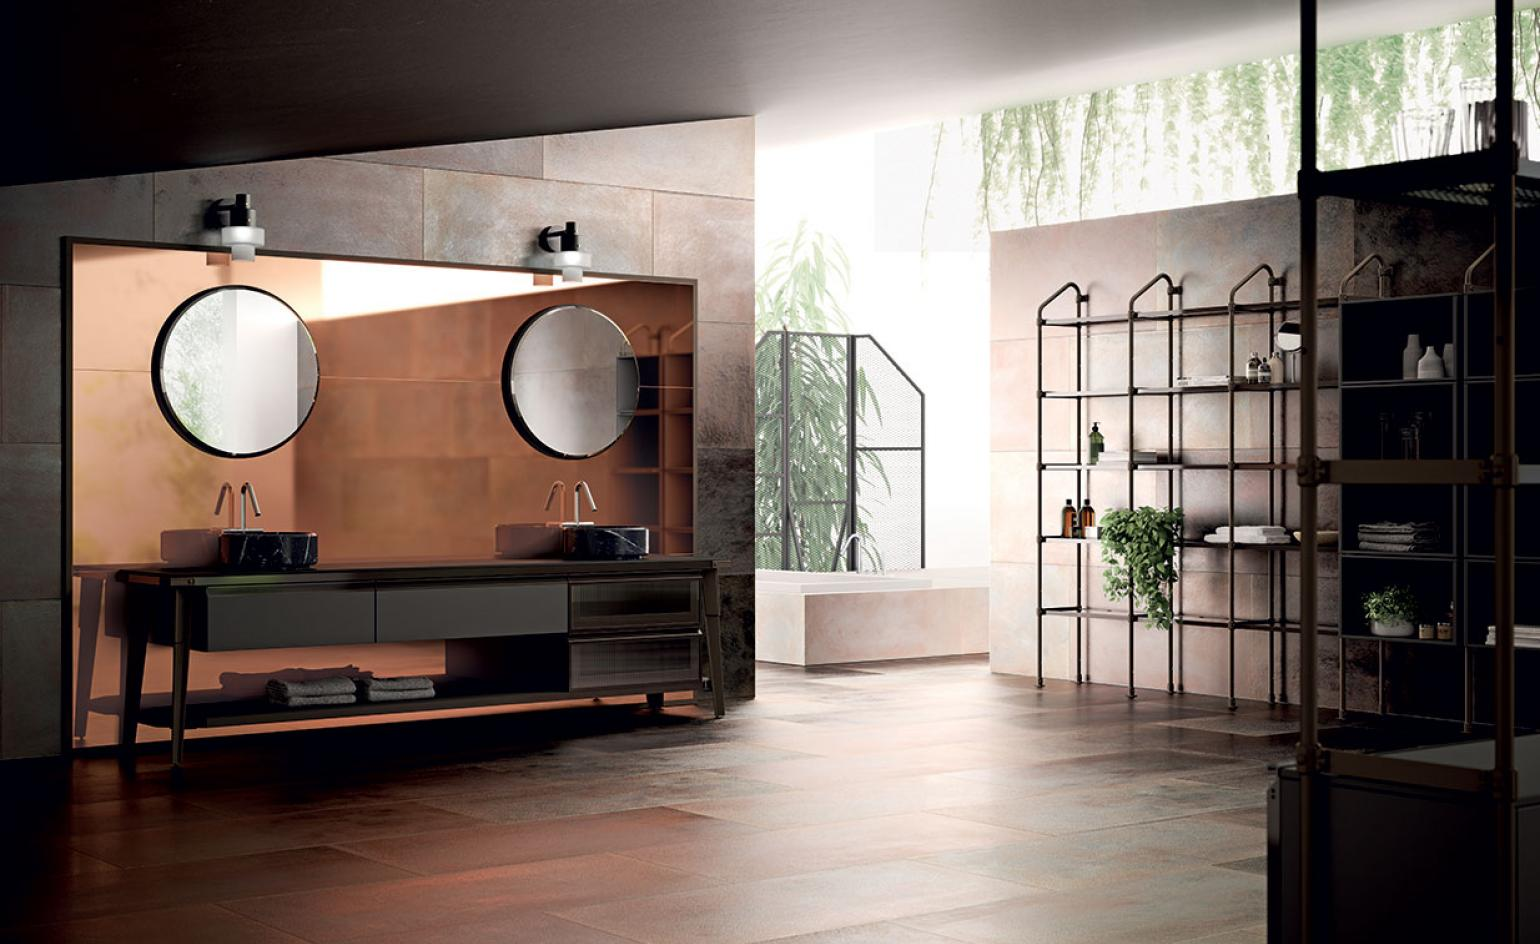 Floored: Diesel Living teams up with Iris Ceramica for latest collaboration